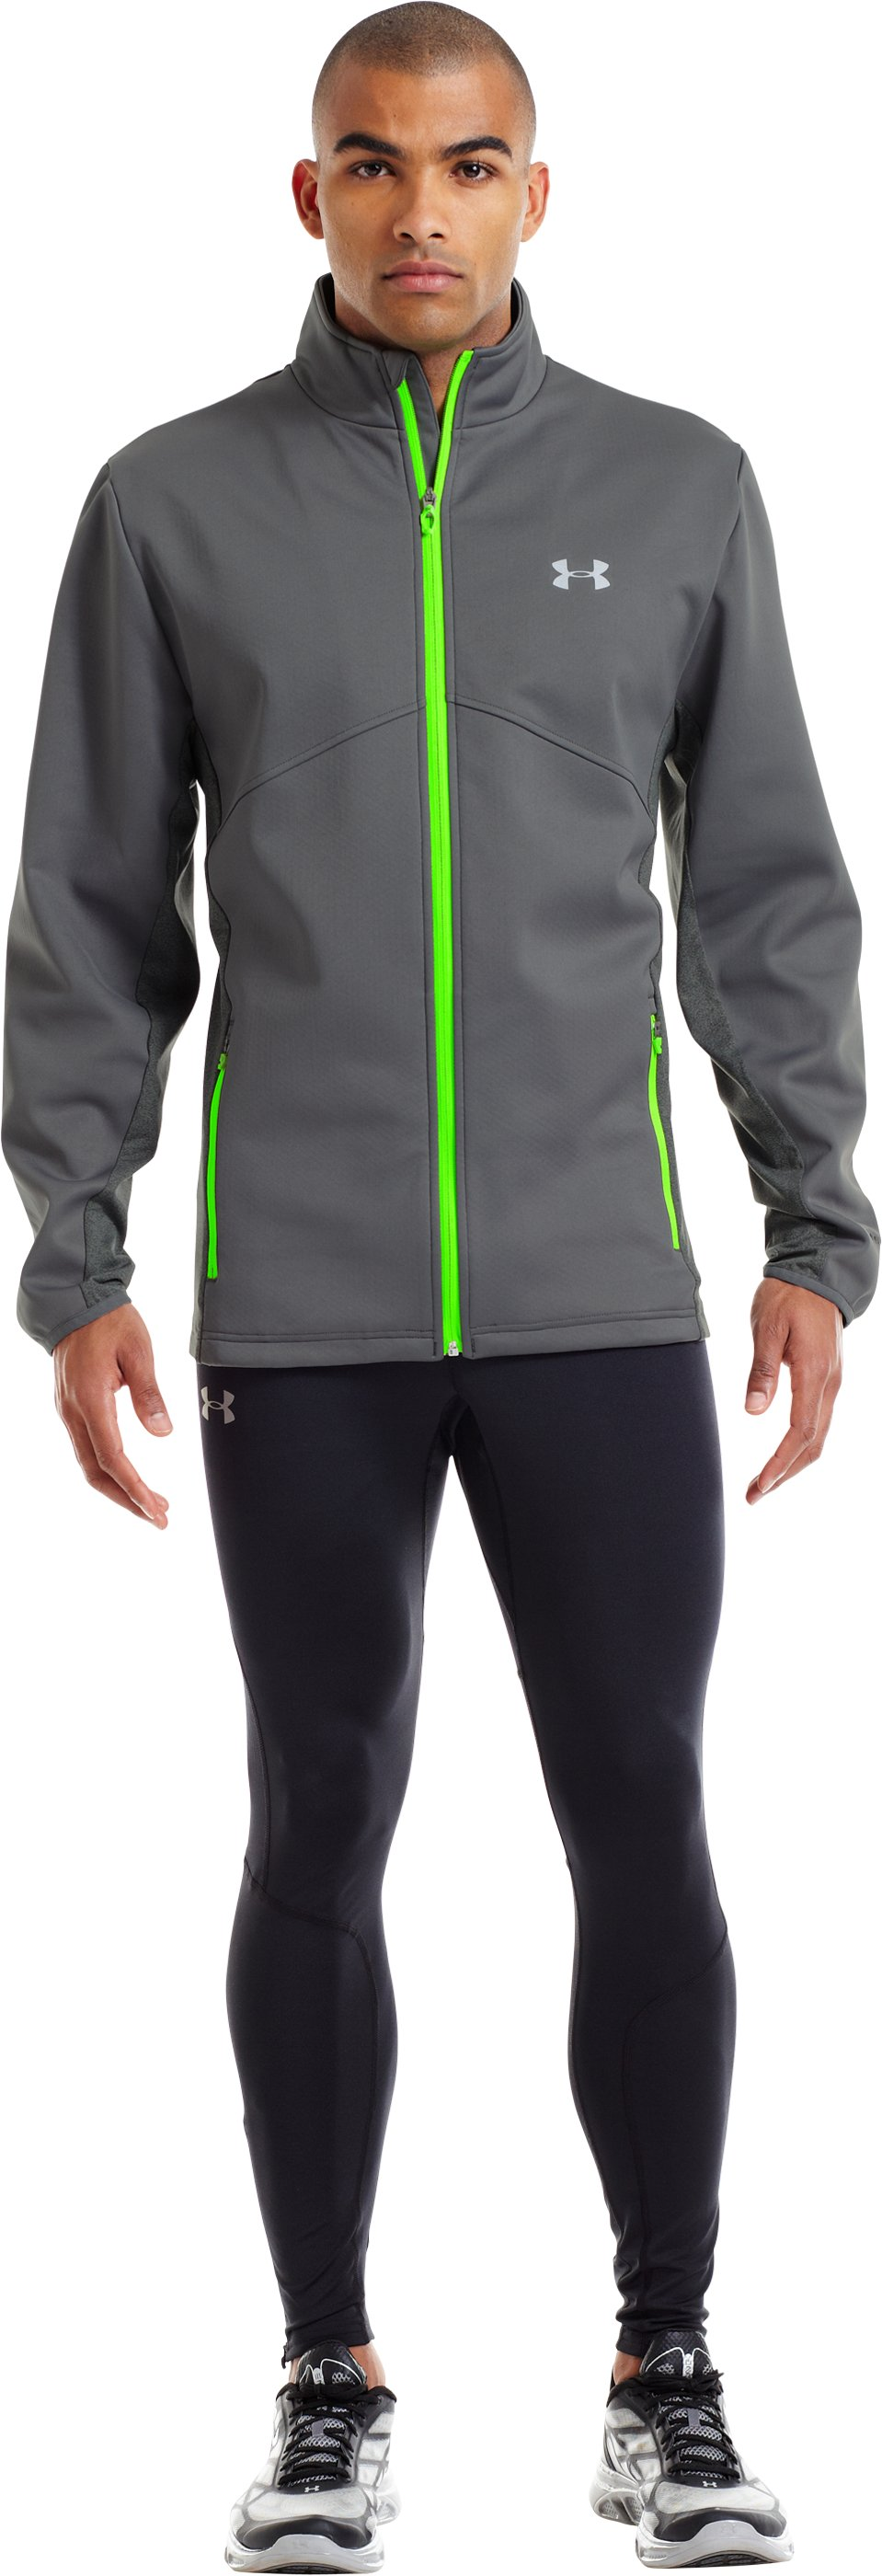 Men's ColdGear® Infrared Storm Run Jacket, Graphite